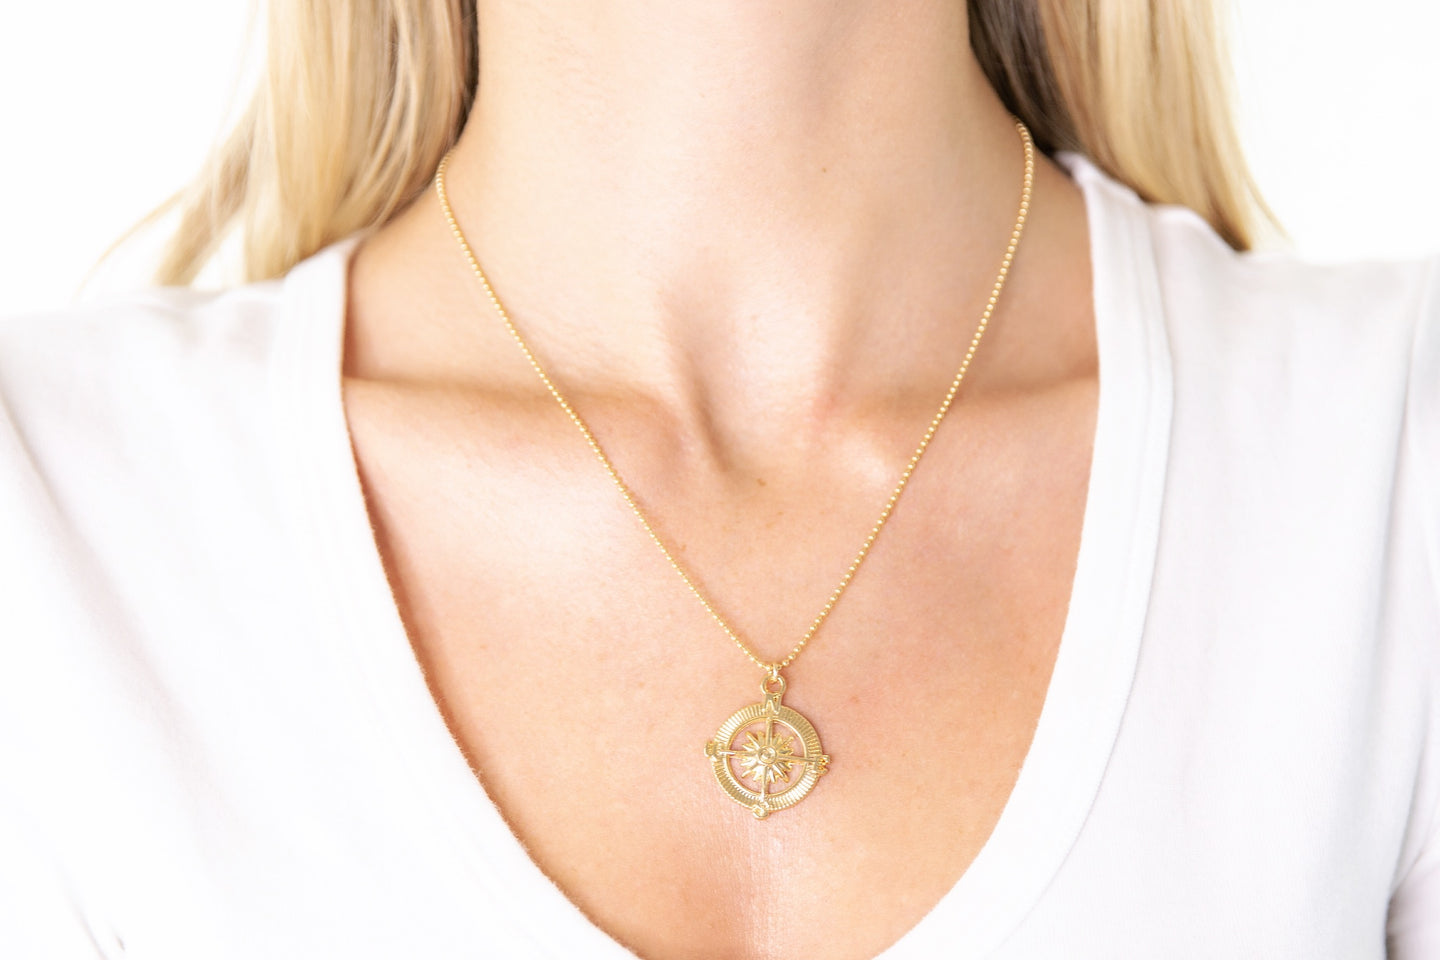 Gold Compass Pendant Necklace